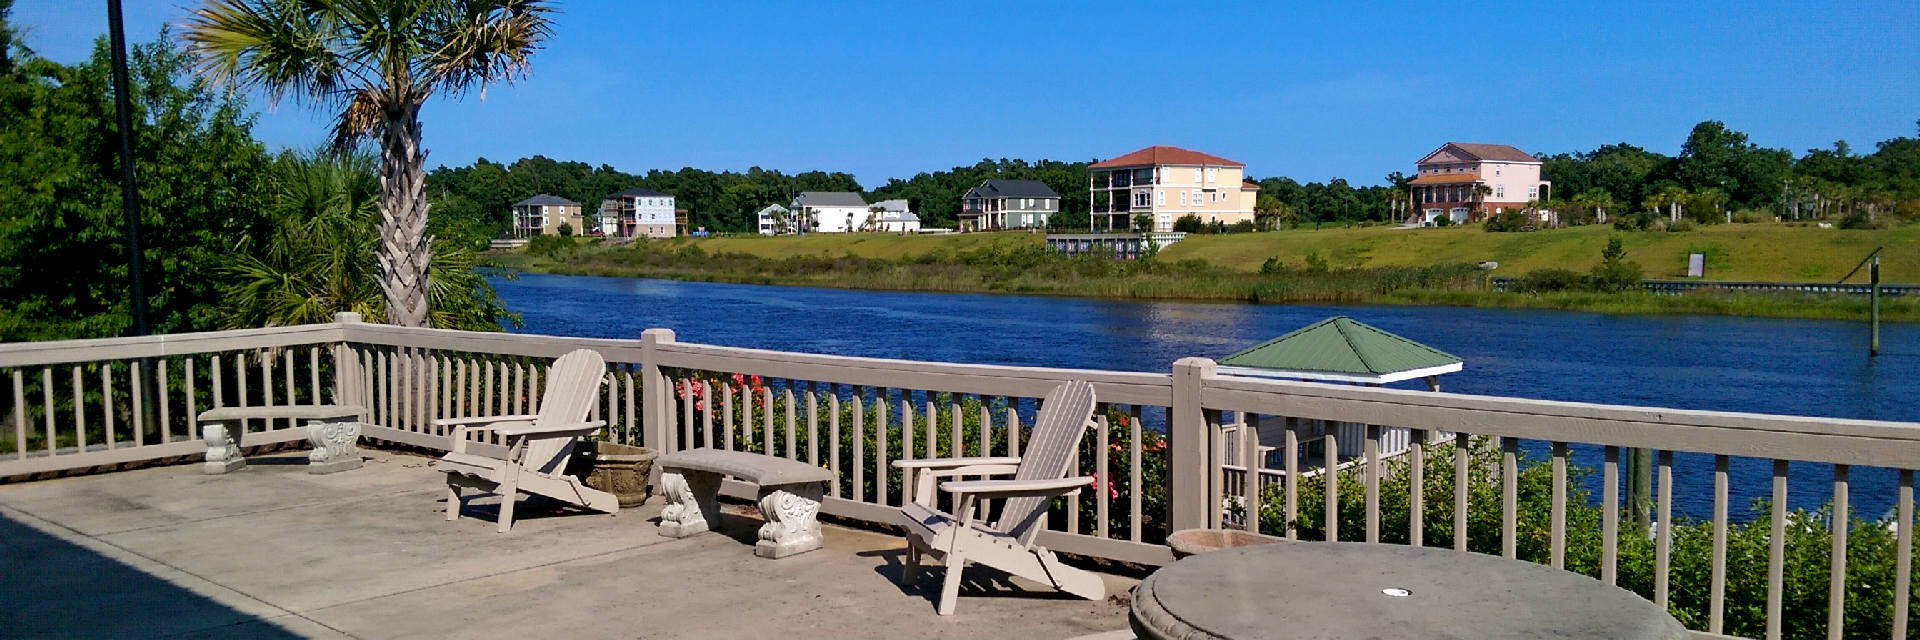 View of The Waterway Pelican Bay in North Myrtle Beach SC